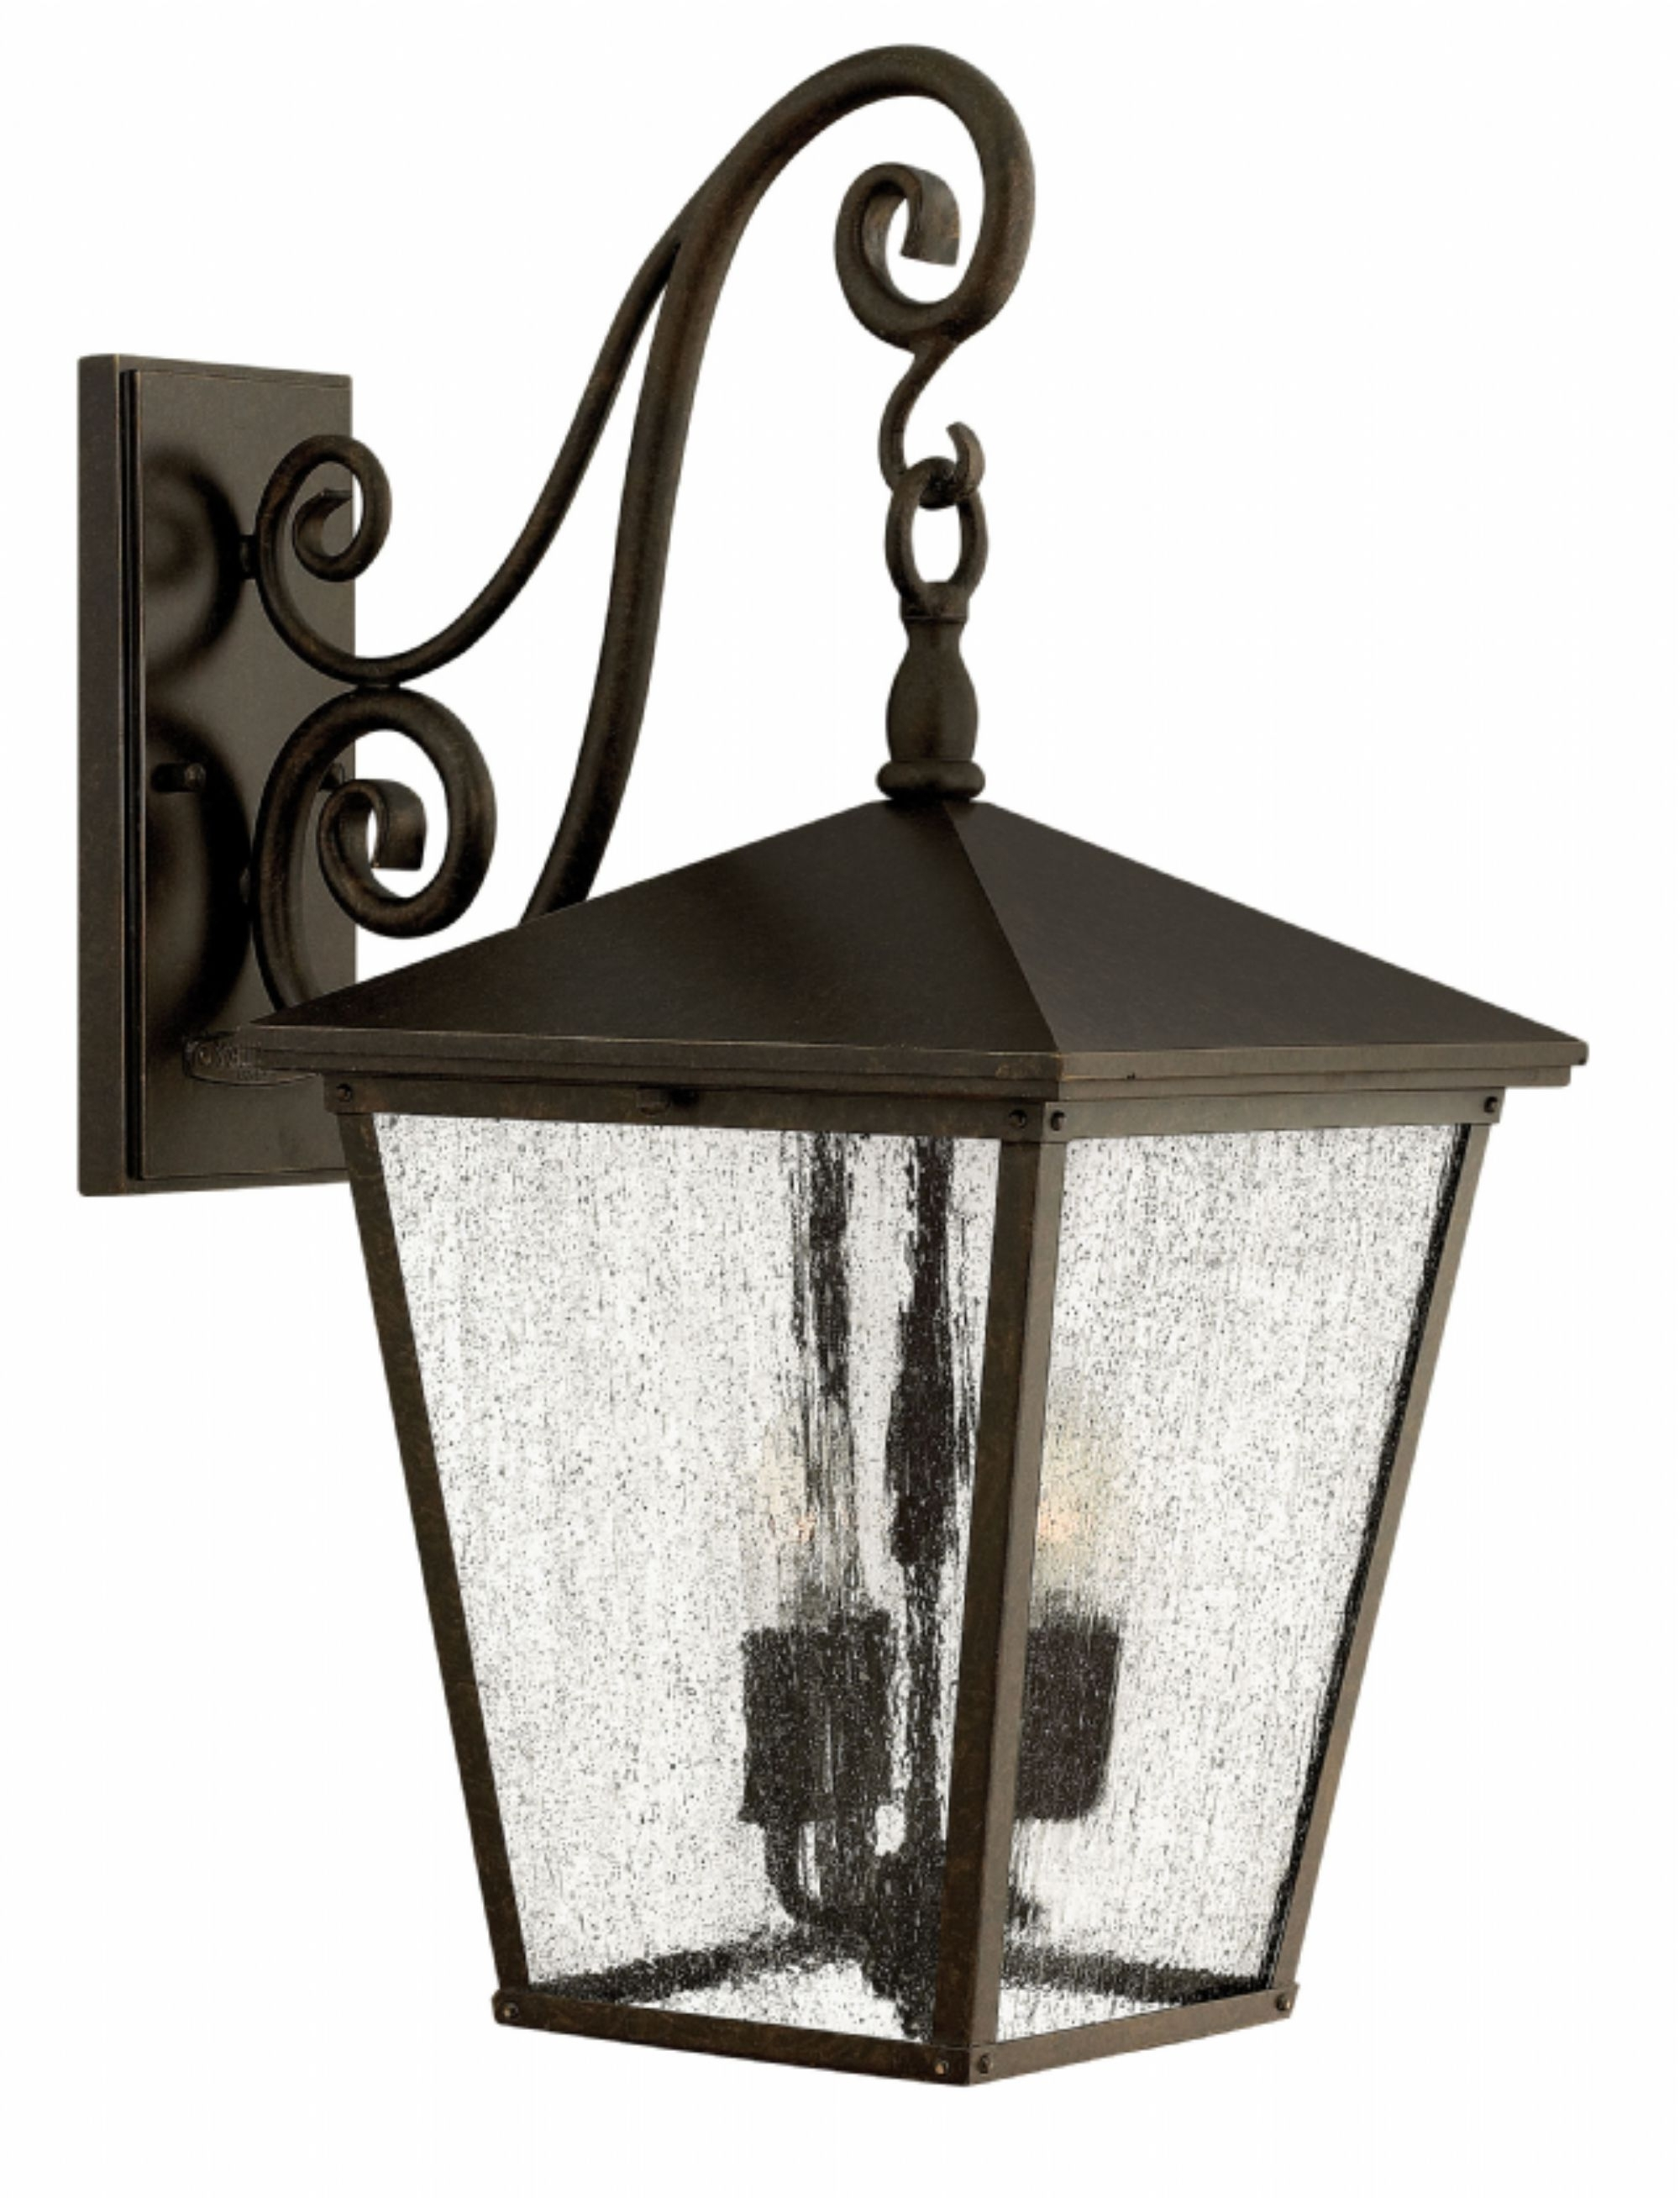 Most Recent Regency Bronze Trellis > Exterior Wall Mount Throughout Extra Large Wall Mount Porch Hinkley Lighting (View 12 of 20)